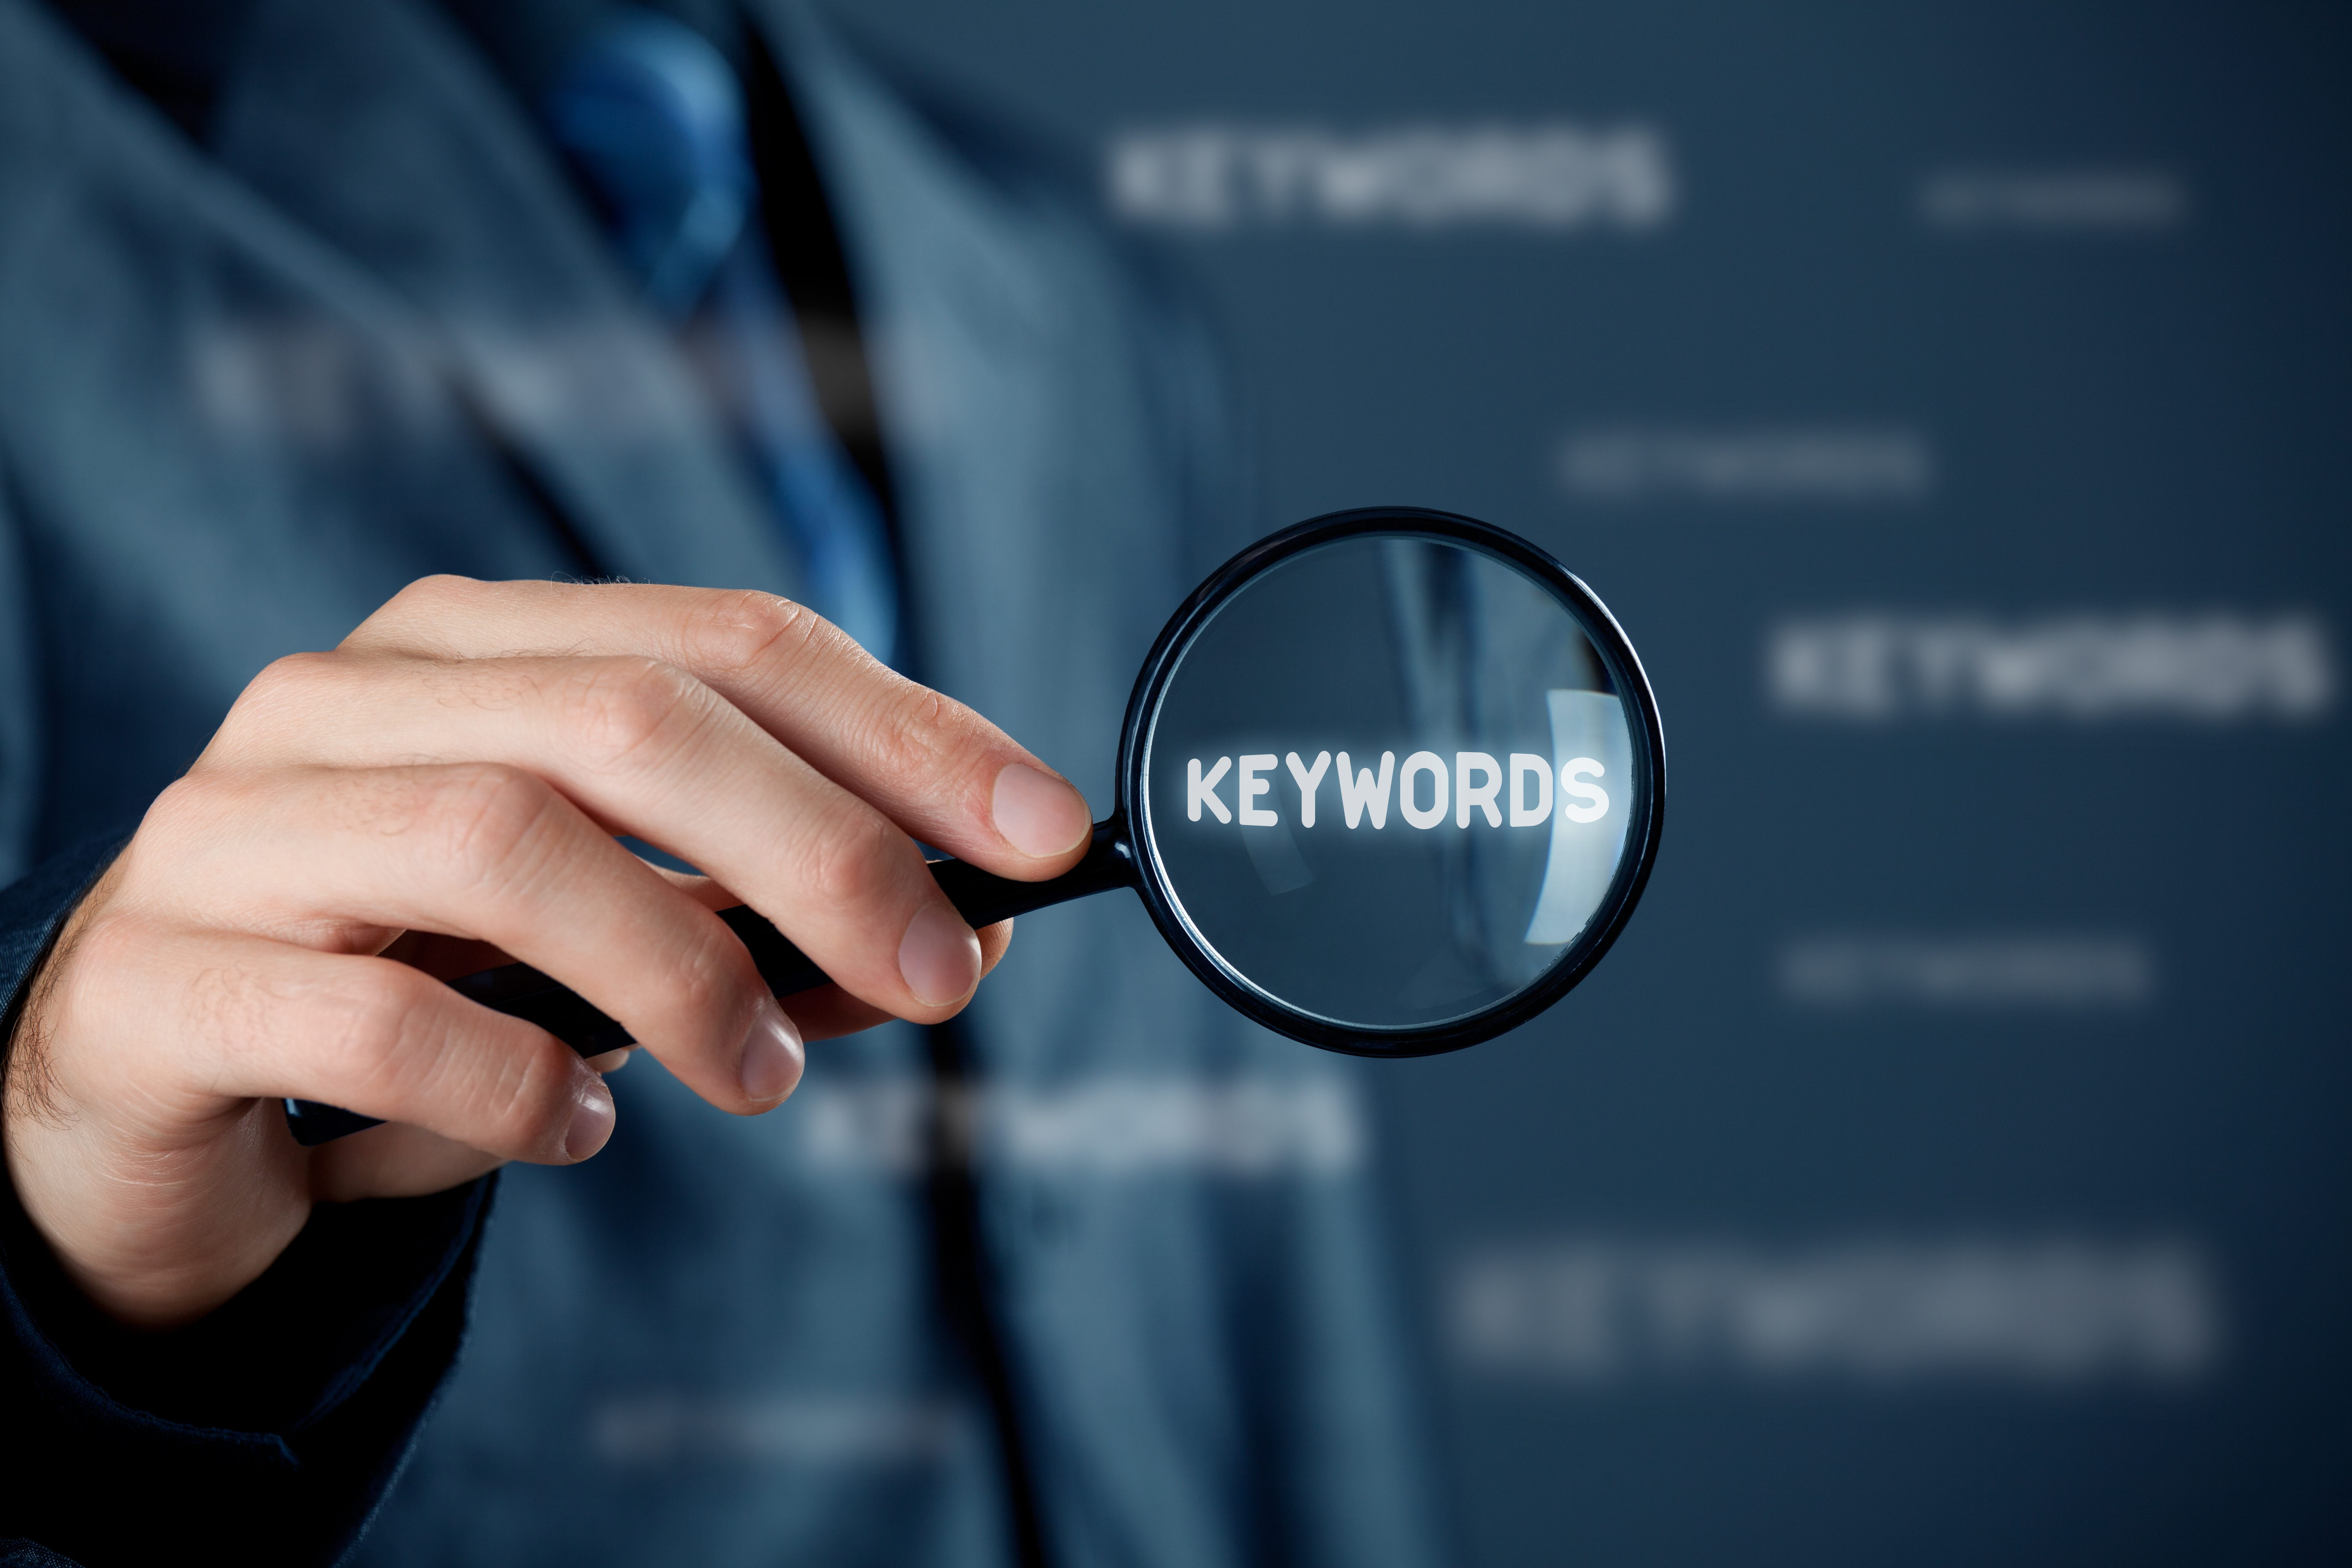 Keyword Rankings Are Not the Best Way to Determine Success